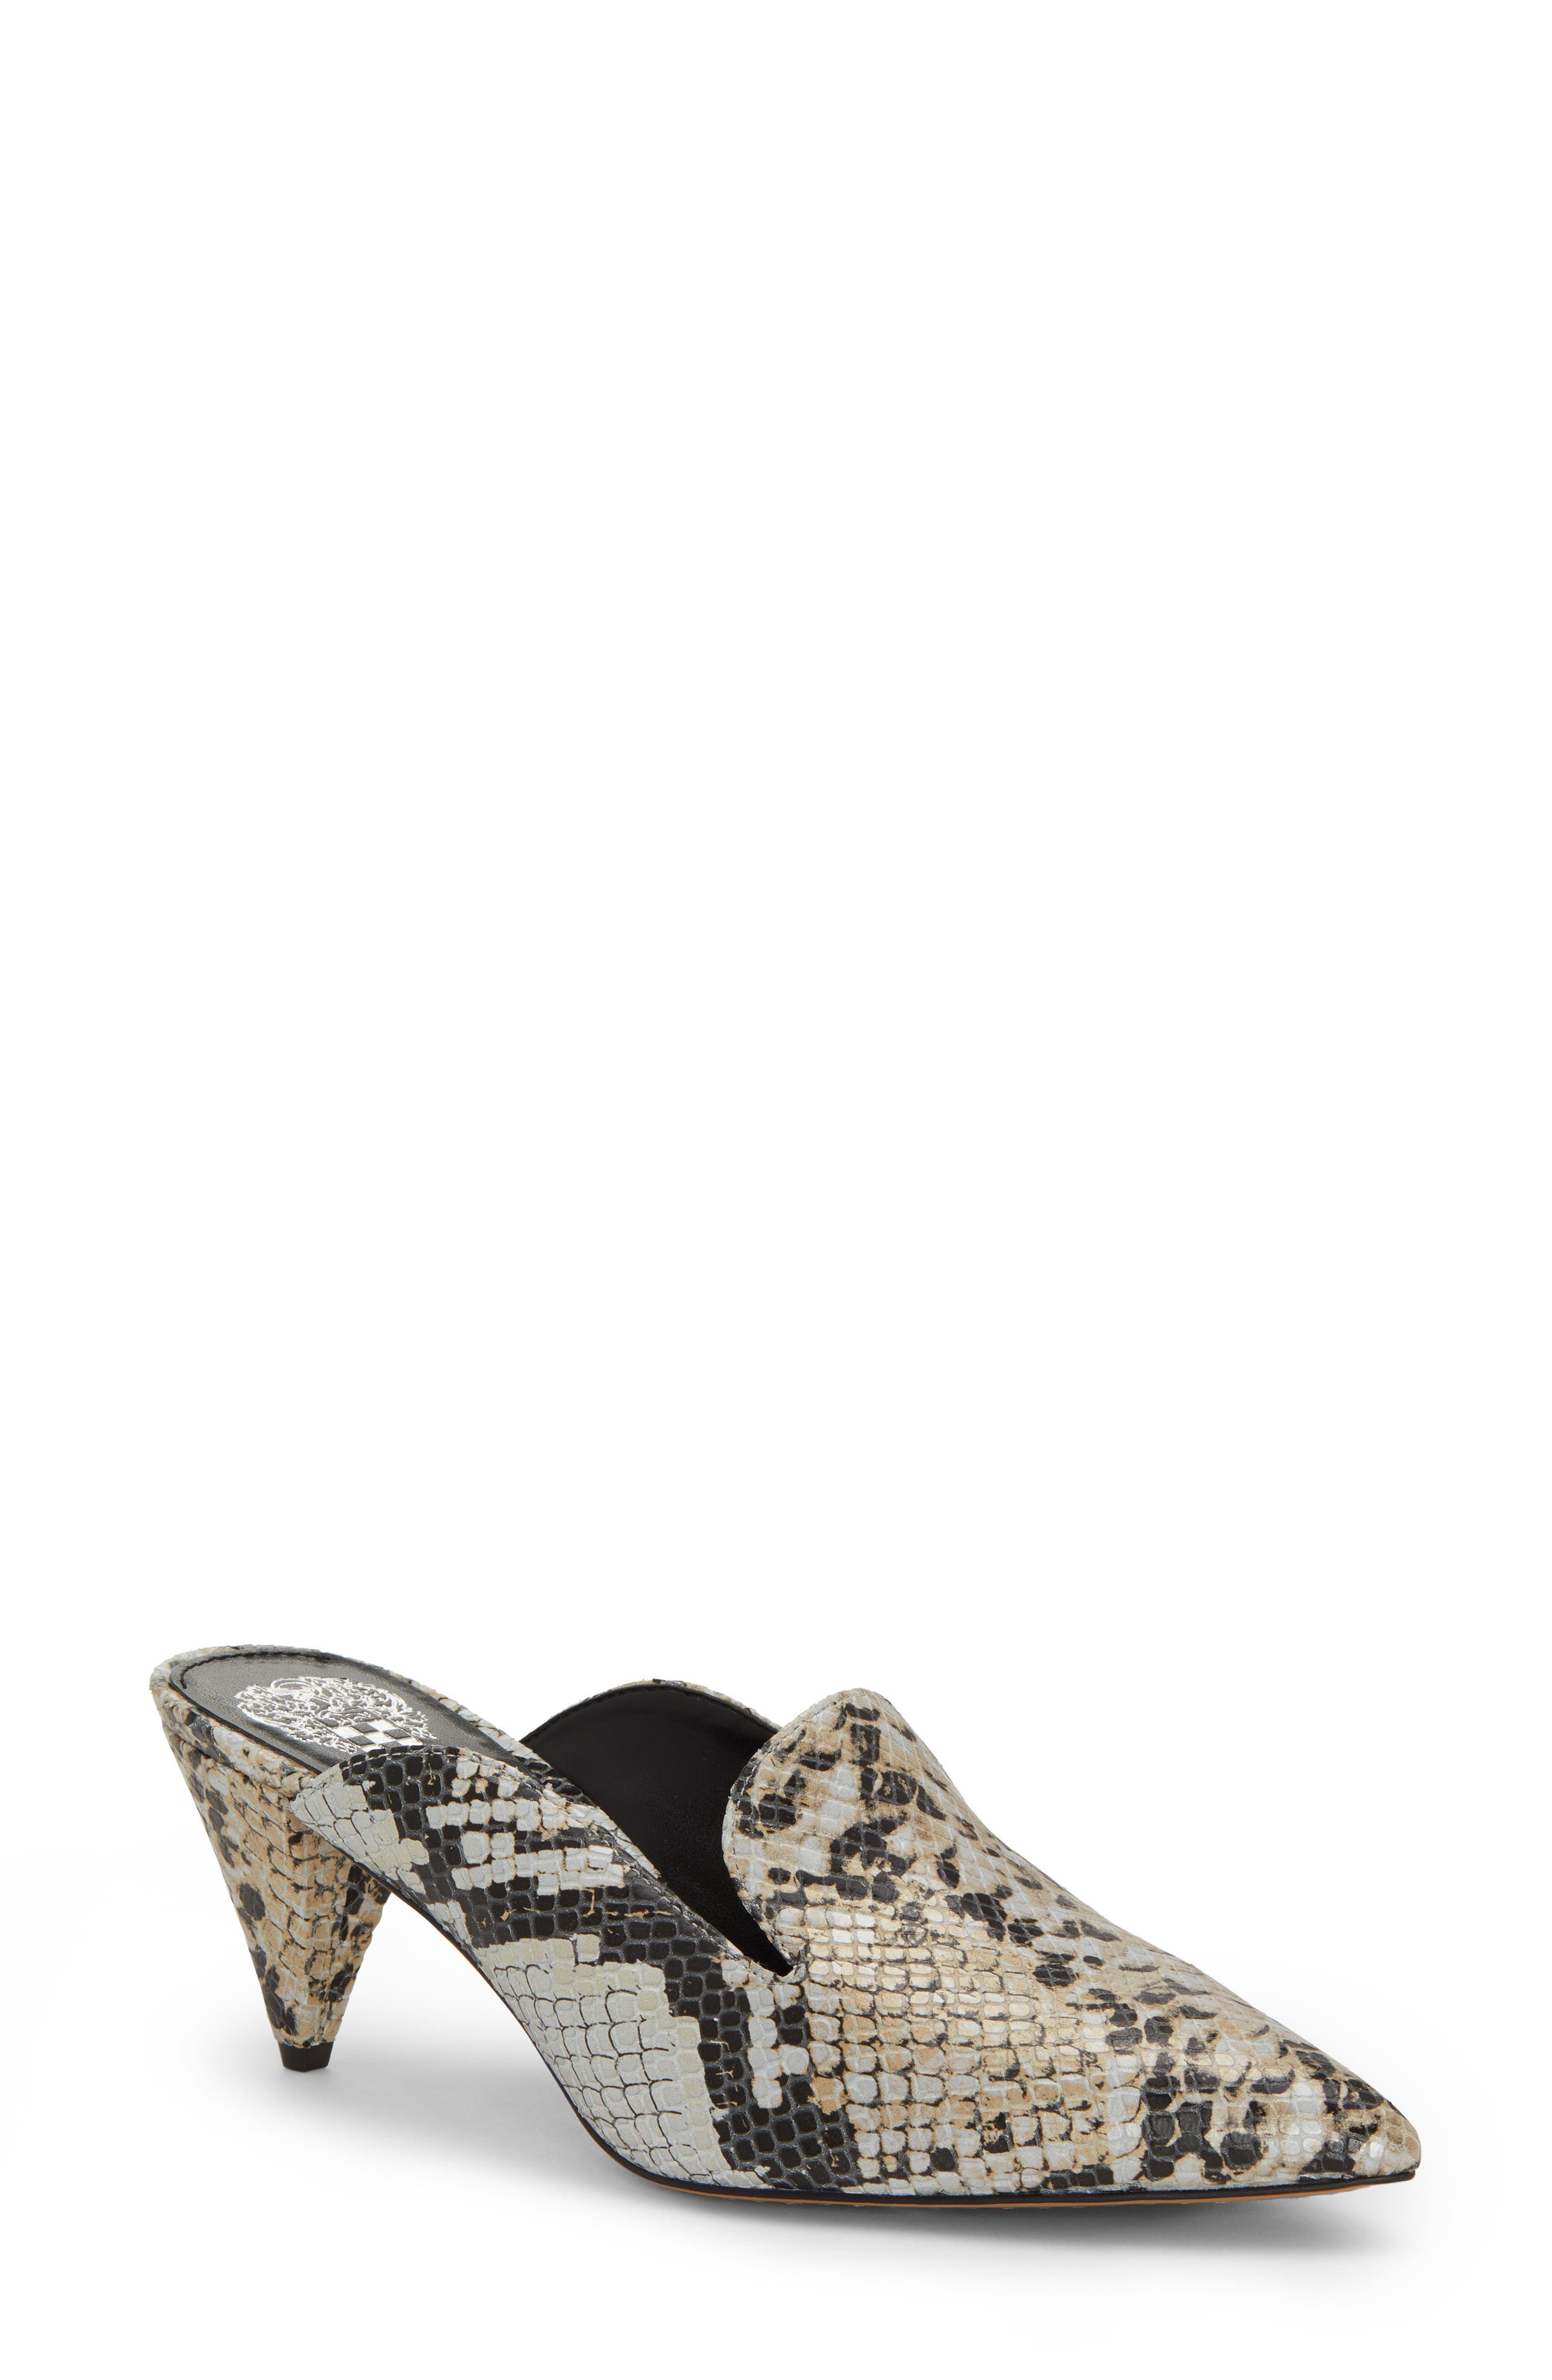 Vince Camuto Cessilia Pointy Toe Mule- Grey